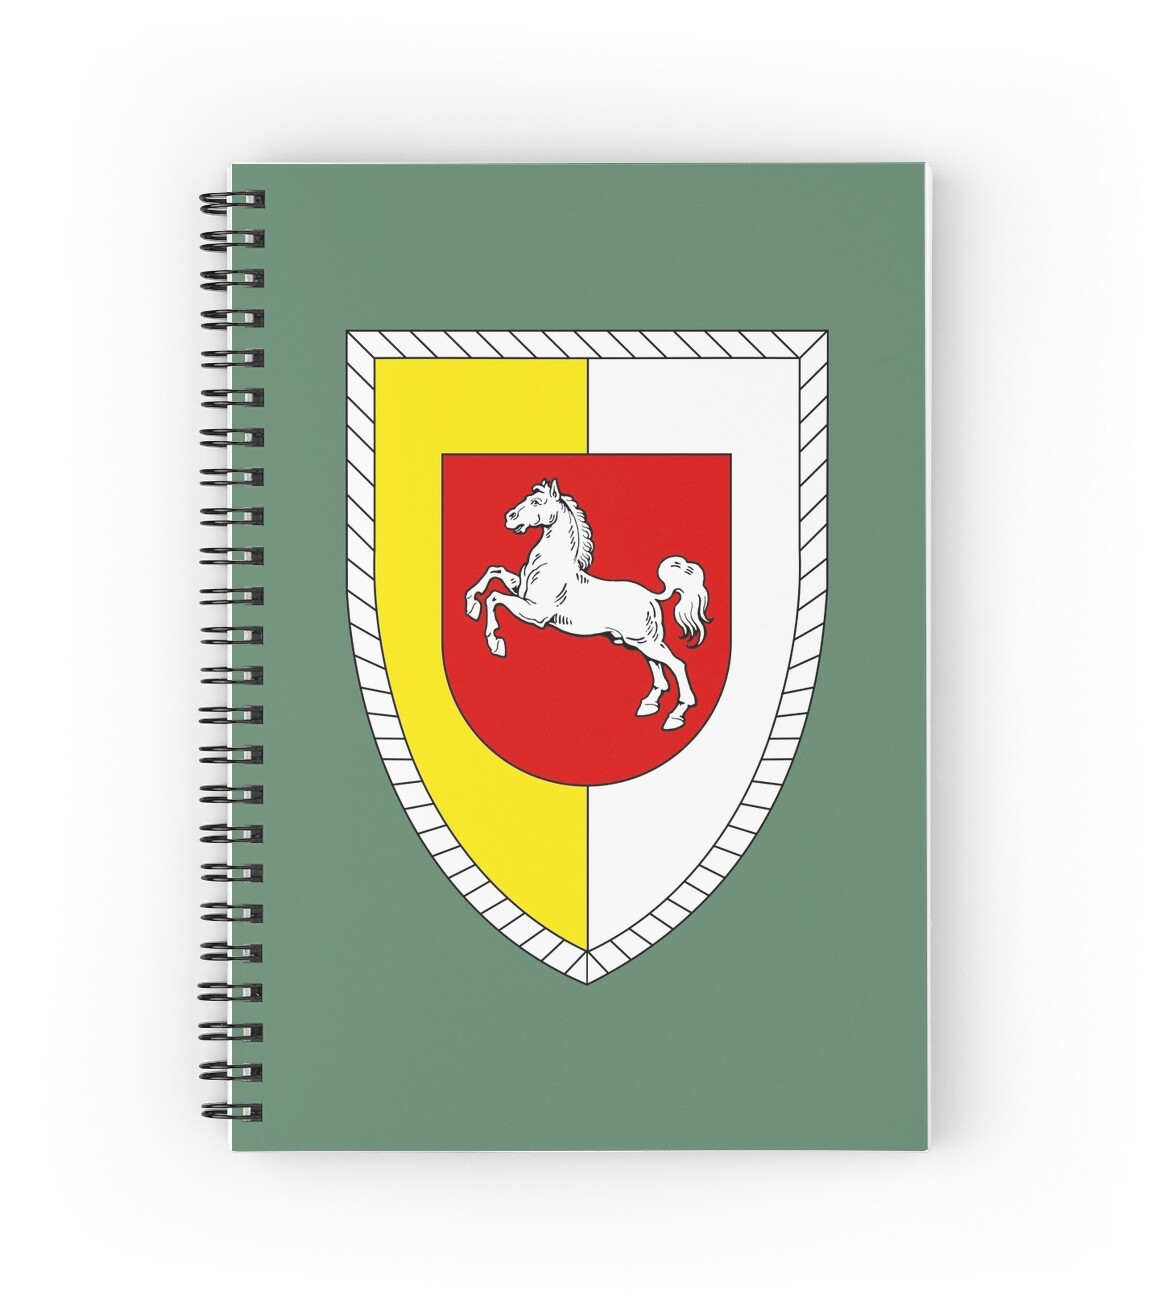 u0026quot 1st panzer division  german bundeswehr  u0026quot  spiral notebooks by wordwidesymbols